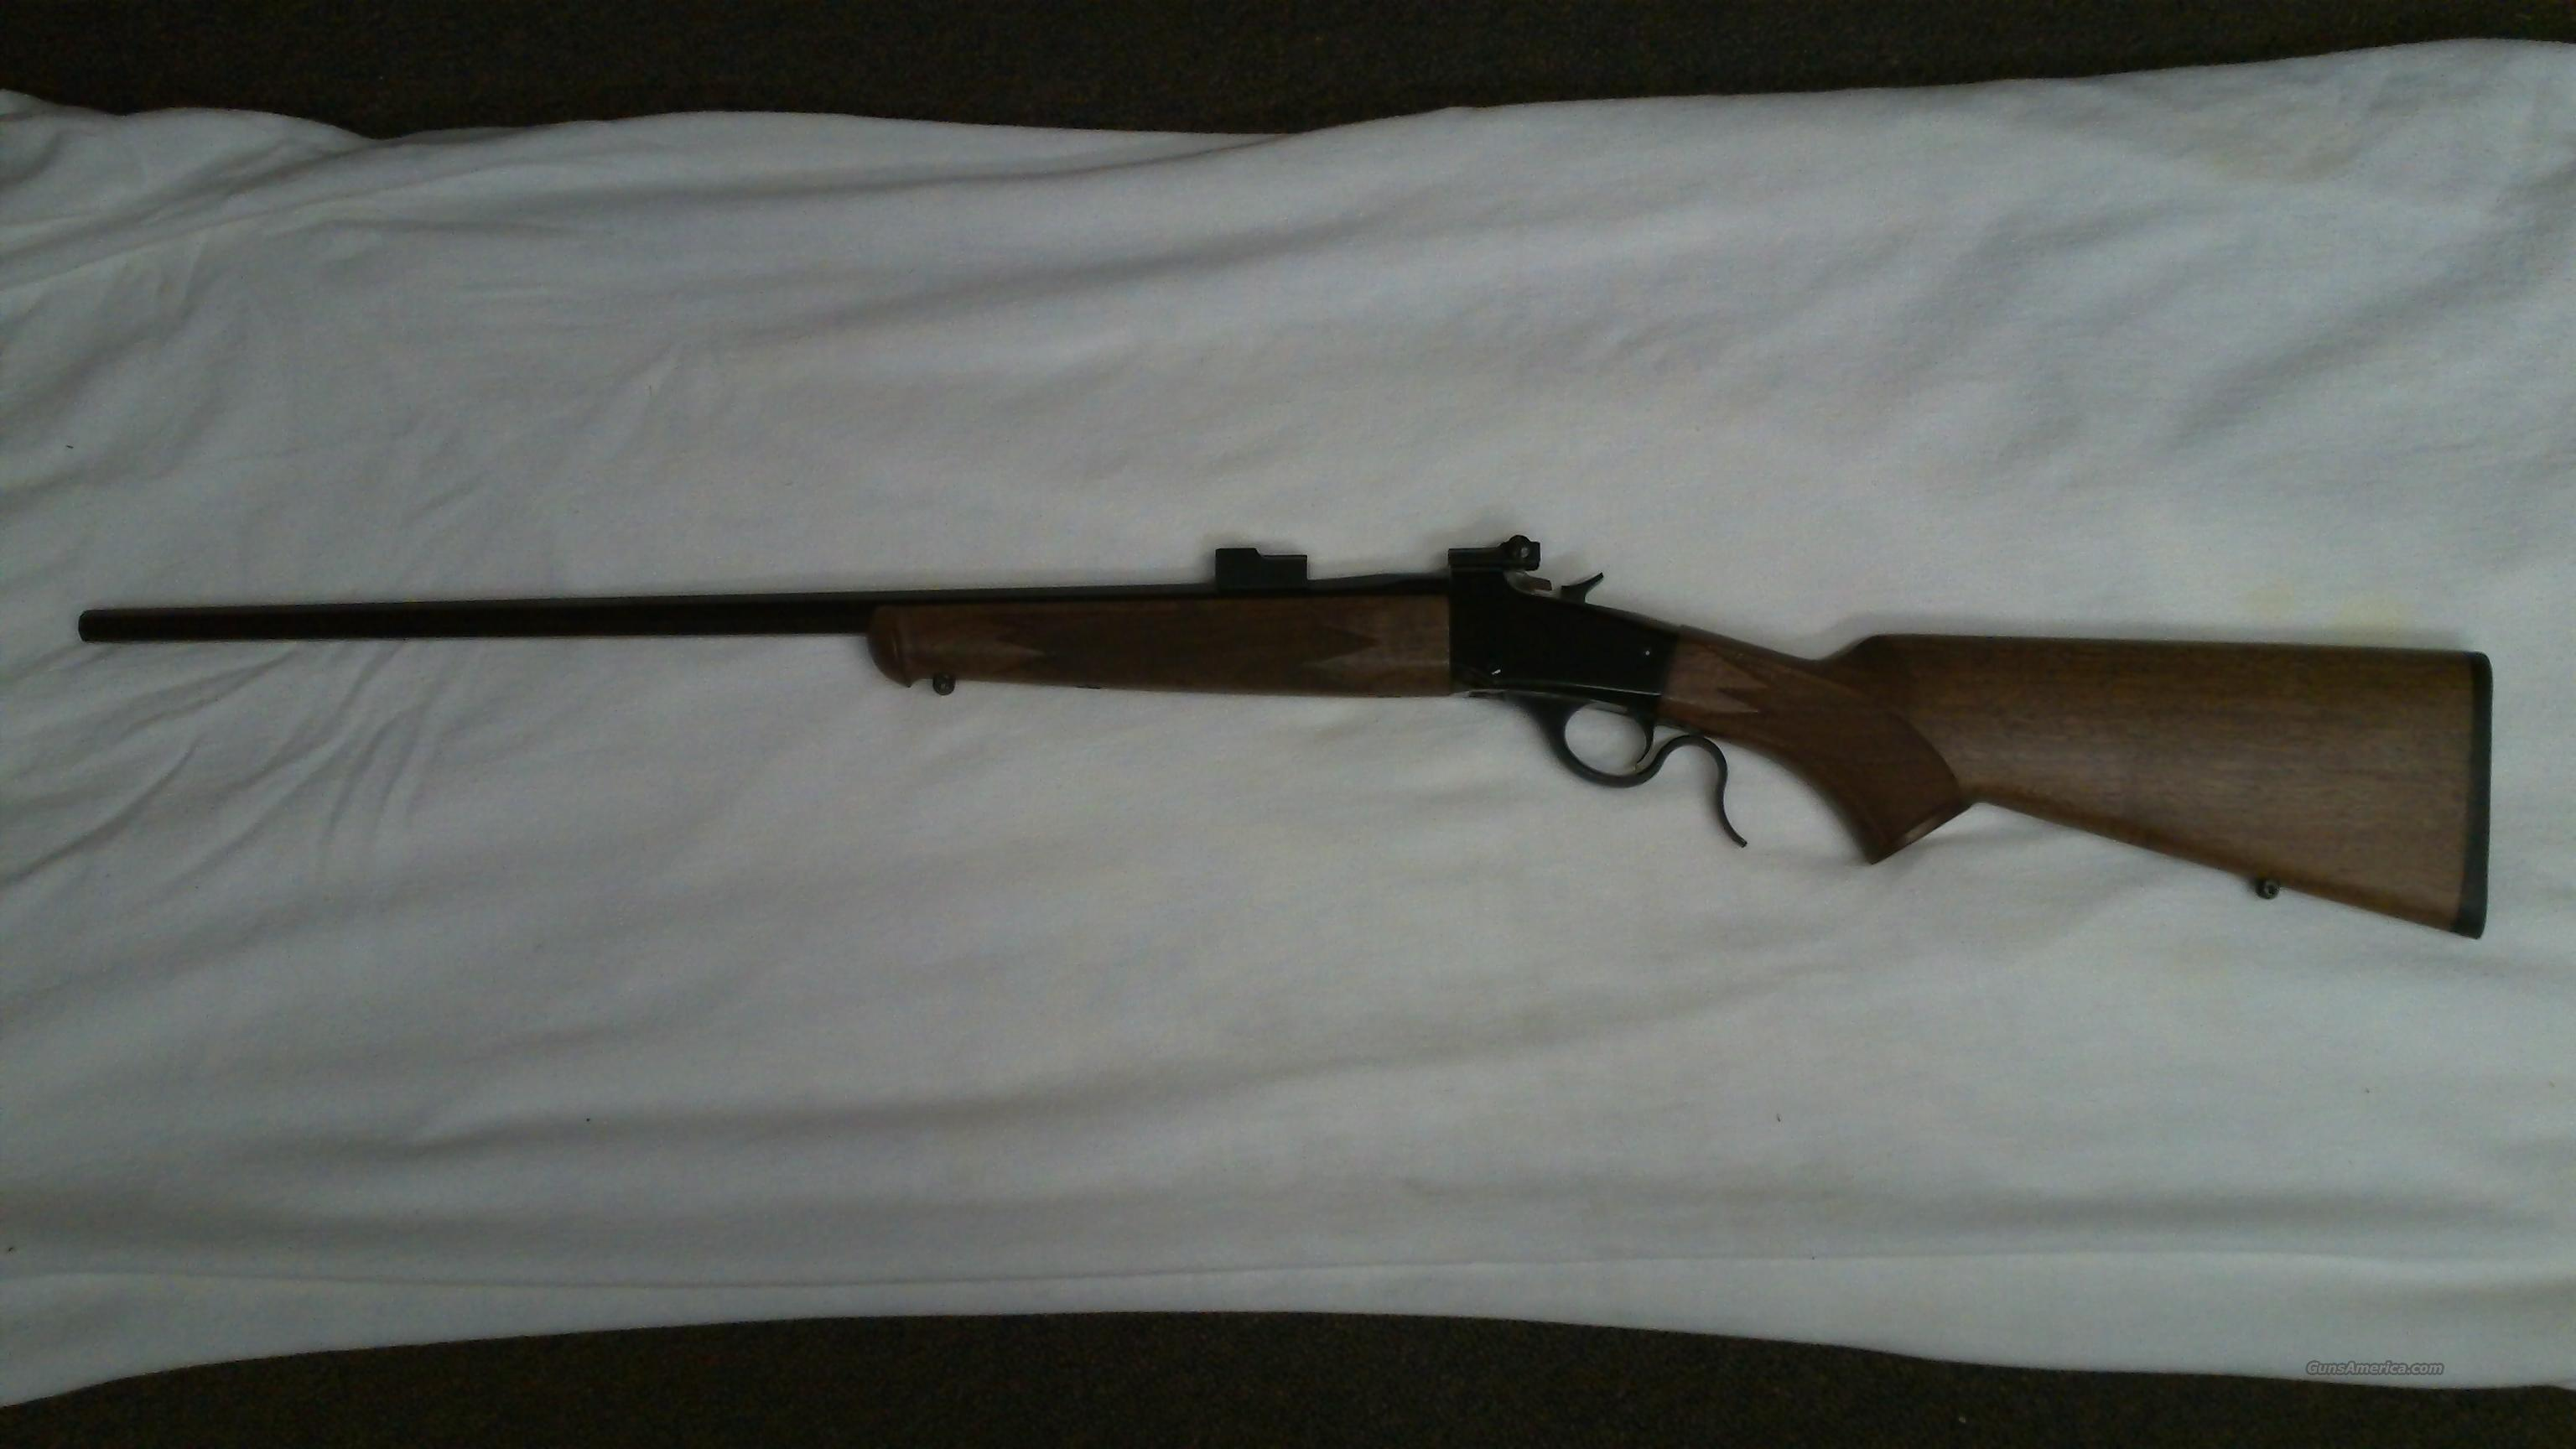 for sale new mfg. 1885 win. low wall  Guns > Rifles > Winchester Rifles - Modern Bolt/Auto/Single > Single Shot